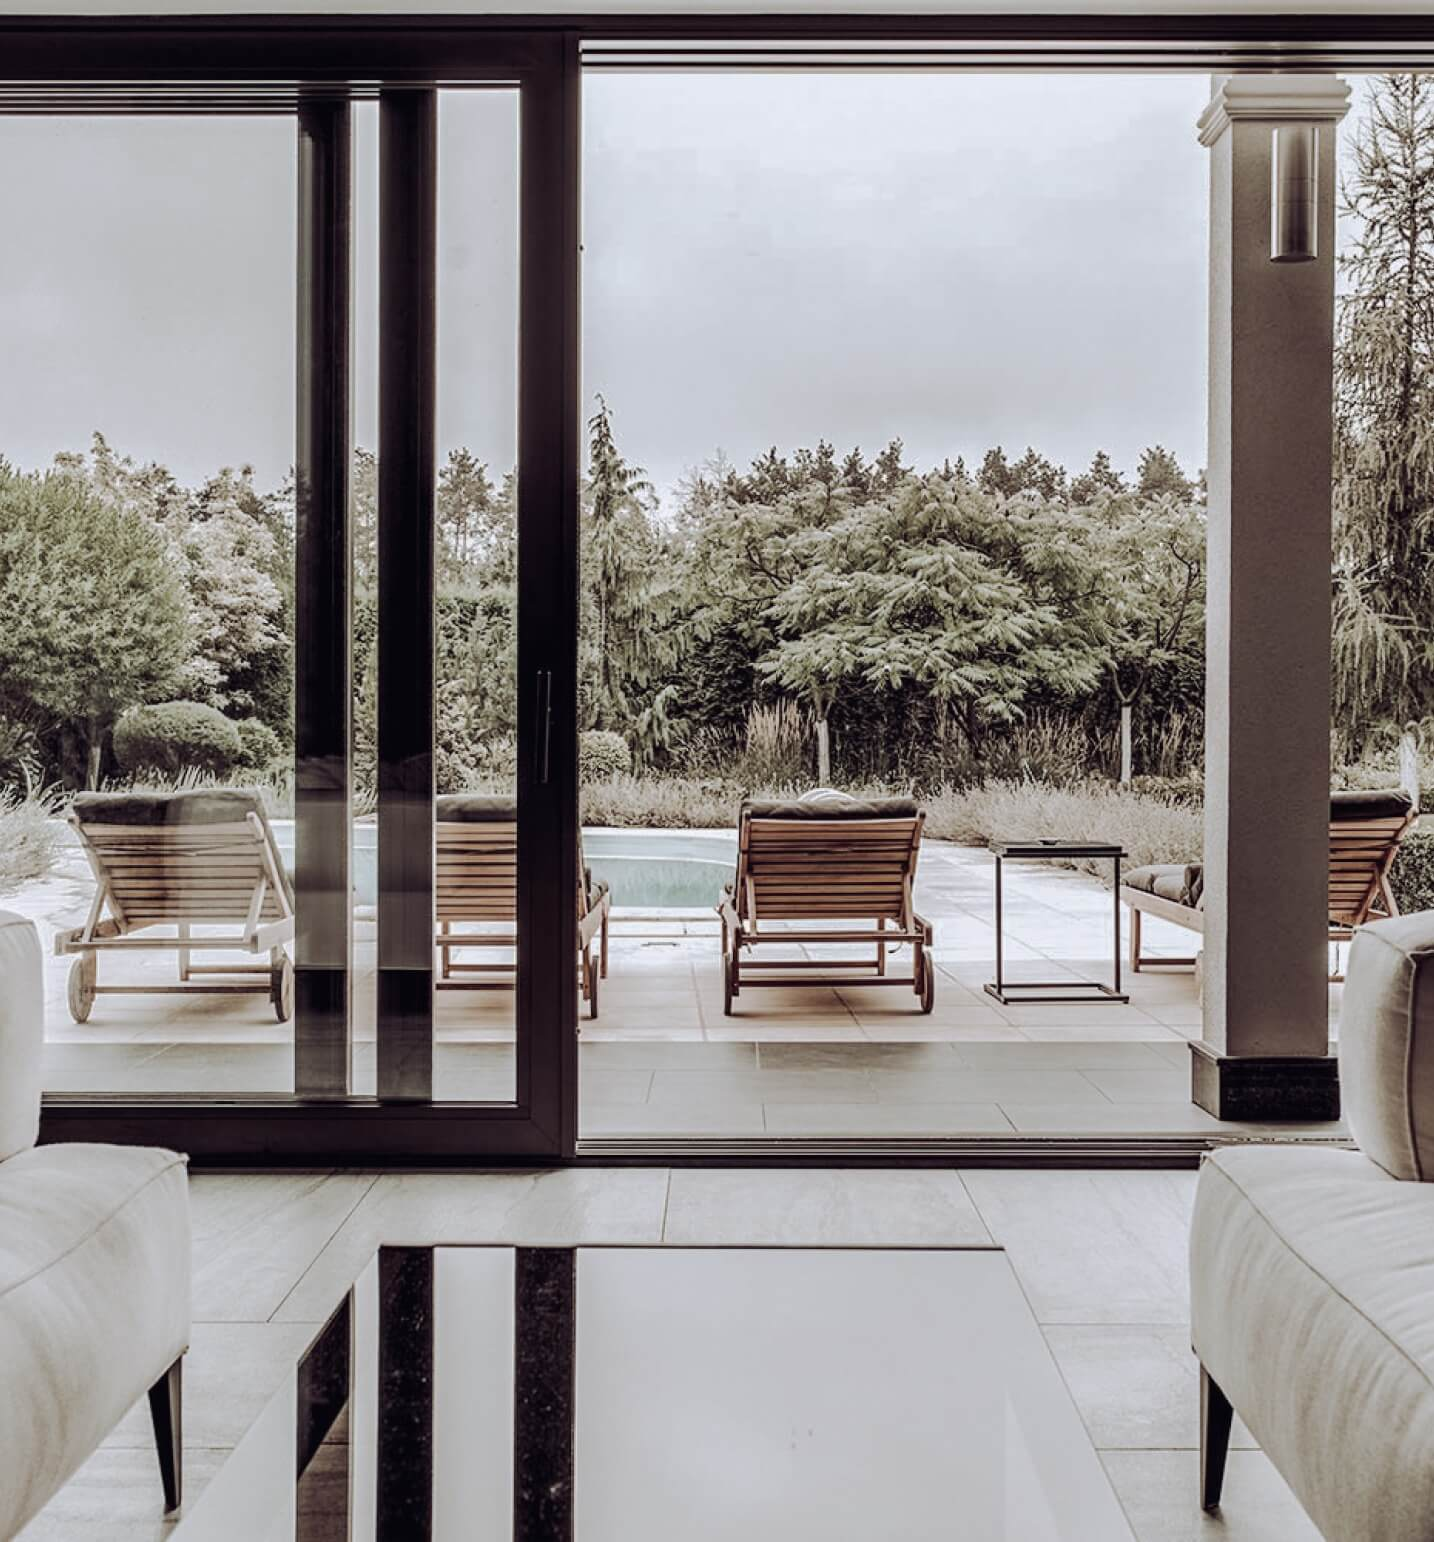 Dark sliding doors showing a view over the pool area in a house.